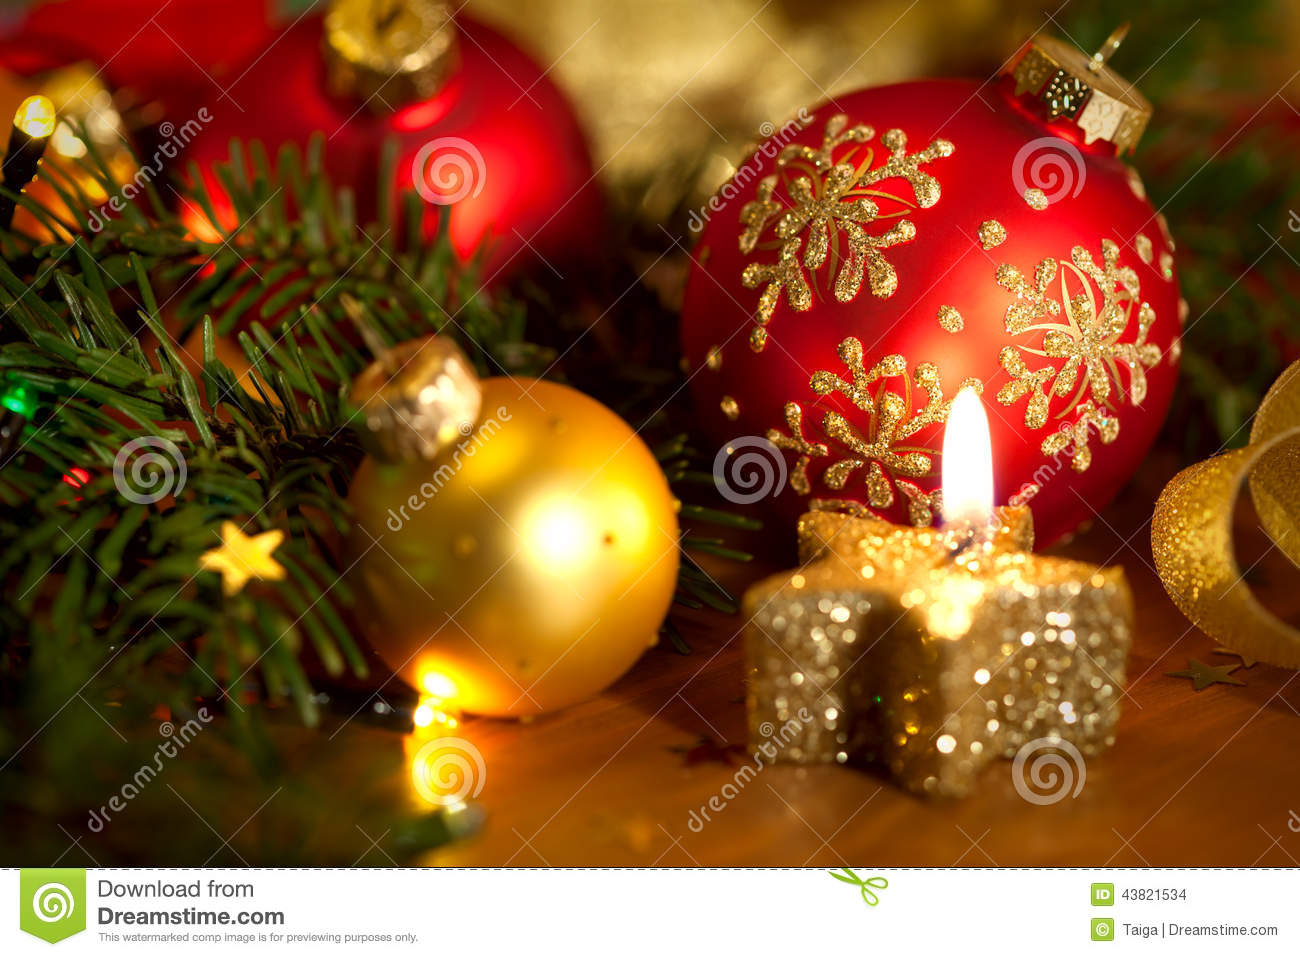 Christmas card with golden candle, balls, pine tree, lights and